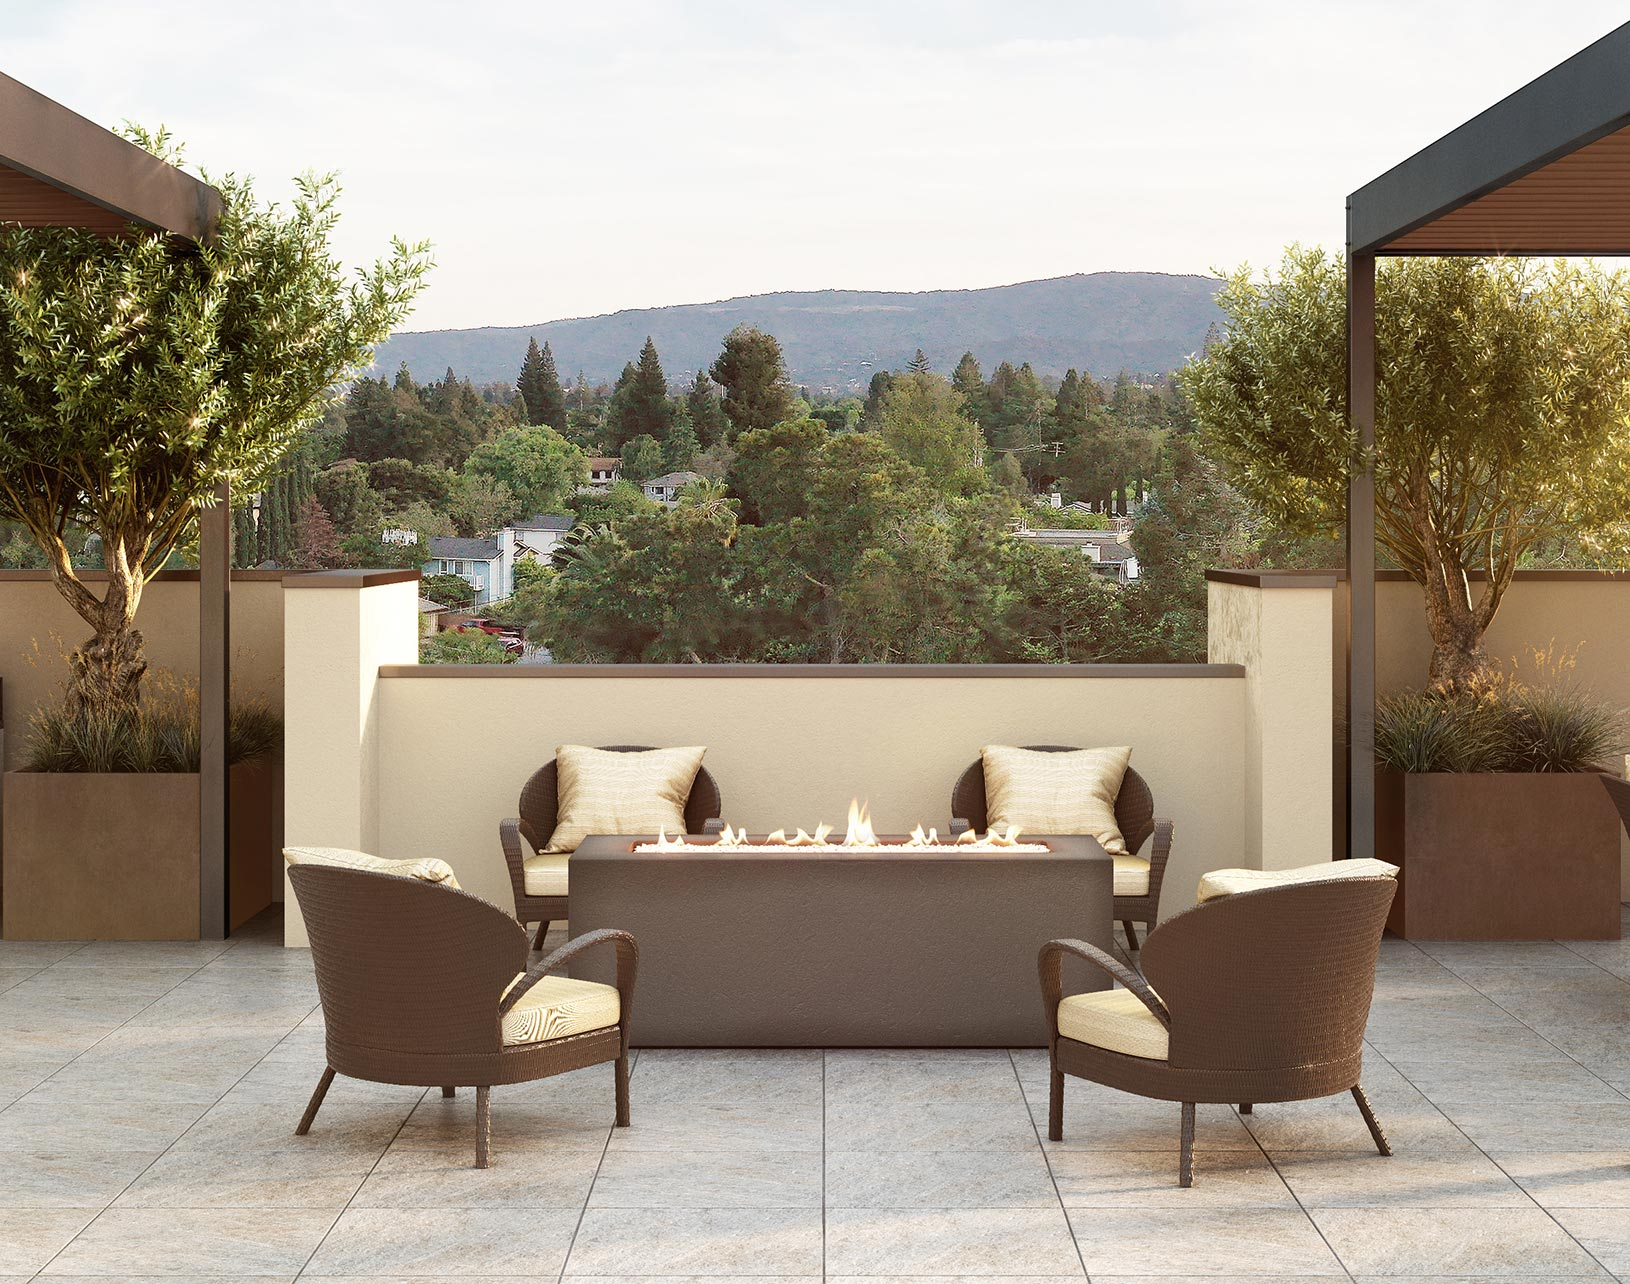 Outdoor patio with view